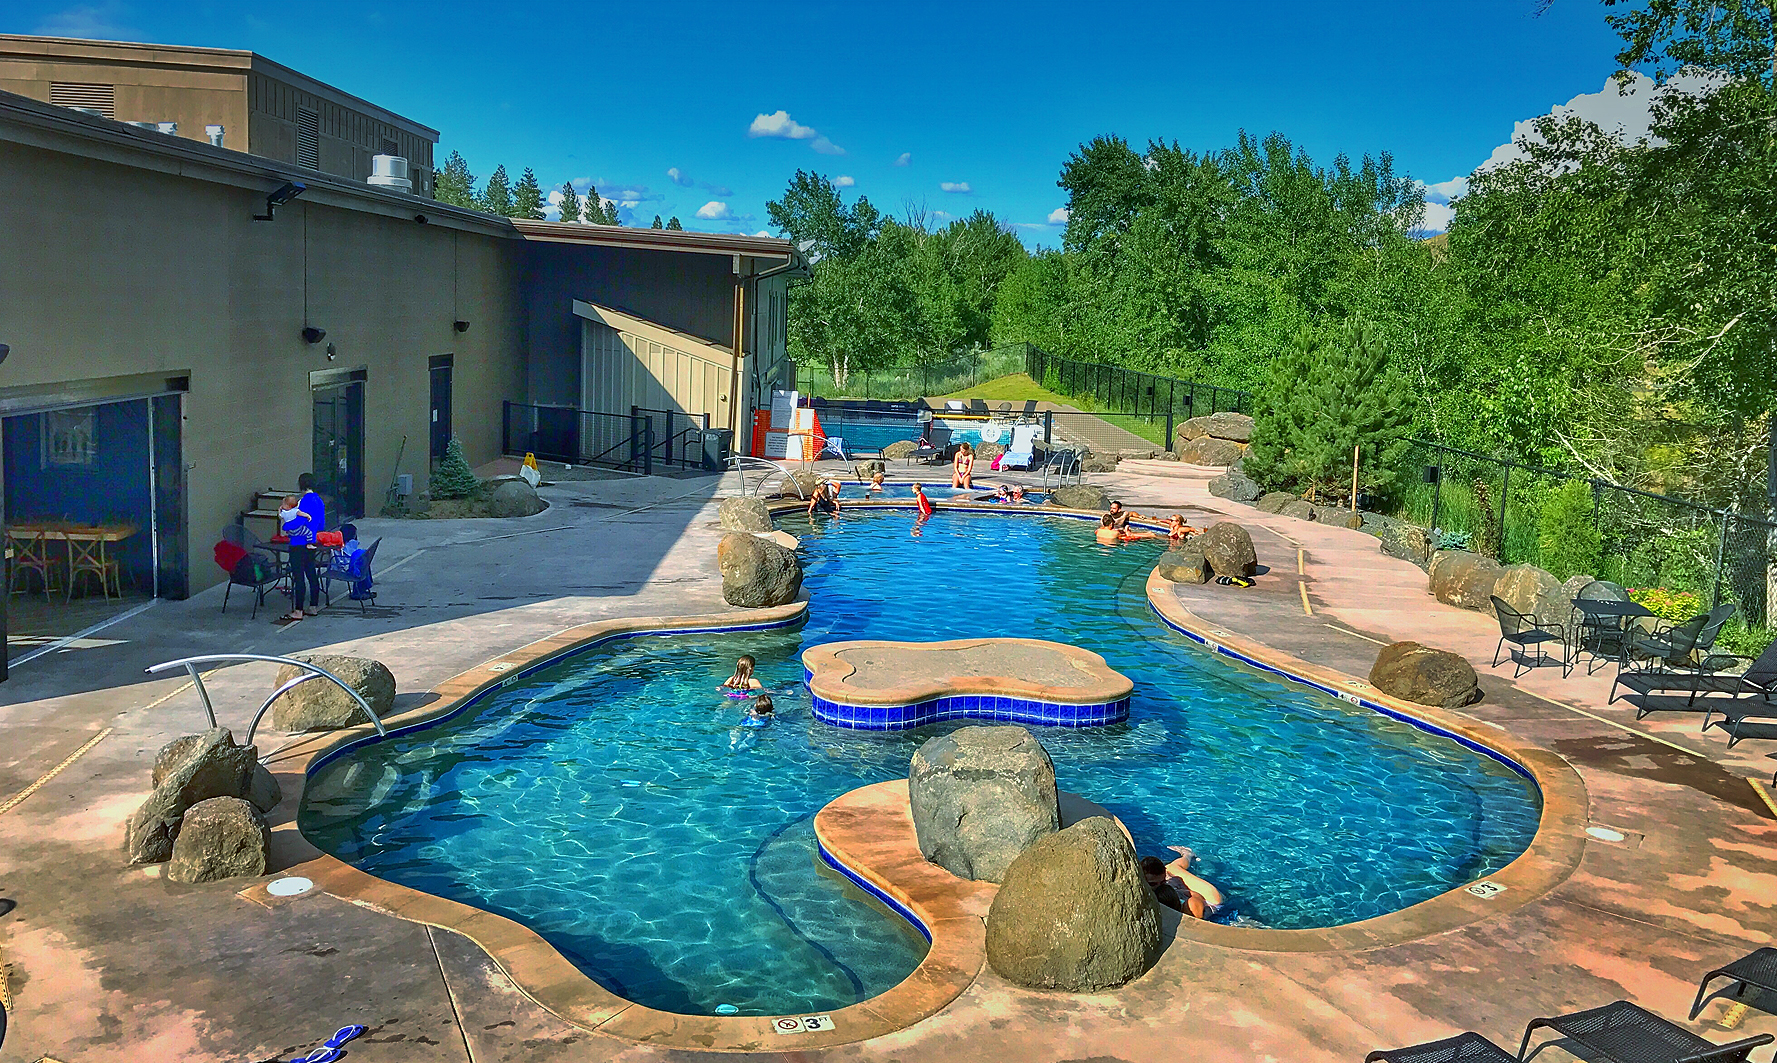 Broadwater Hot Springs & Pools & Spas - The Spring's Taproom